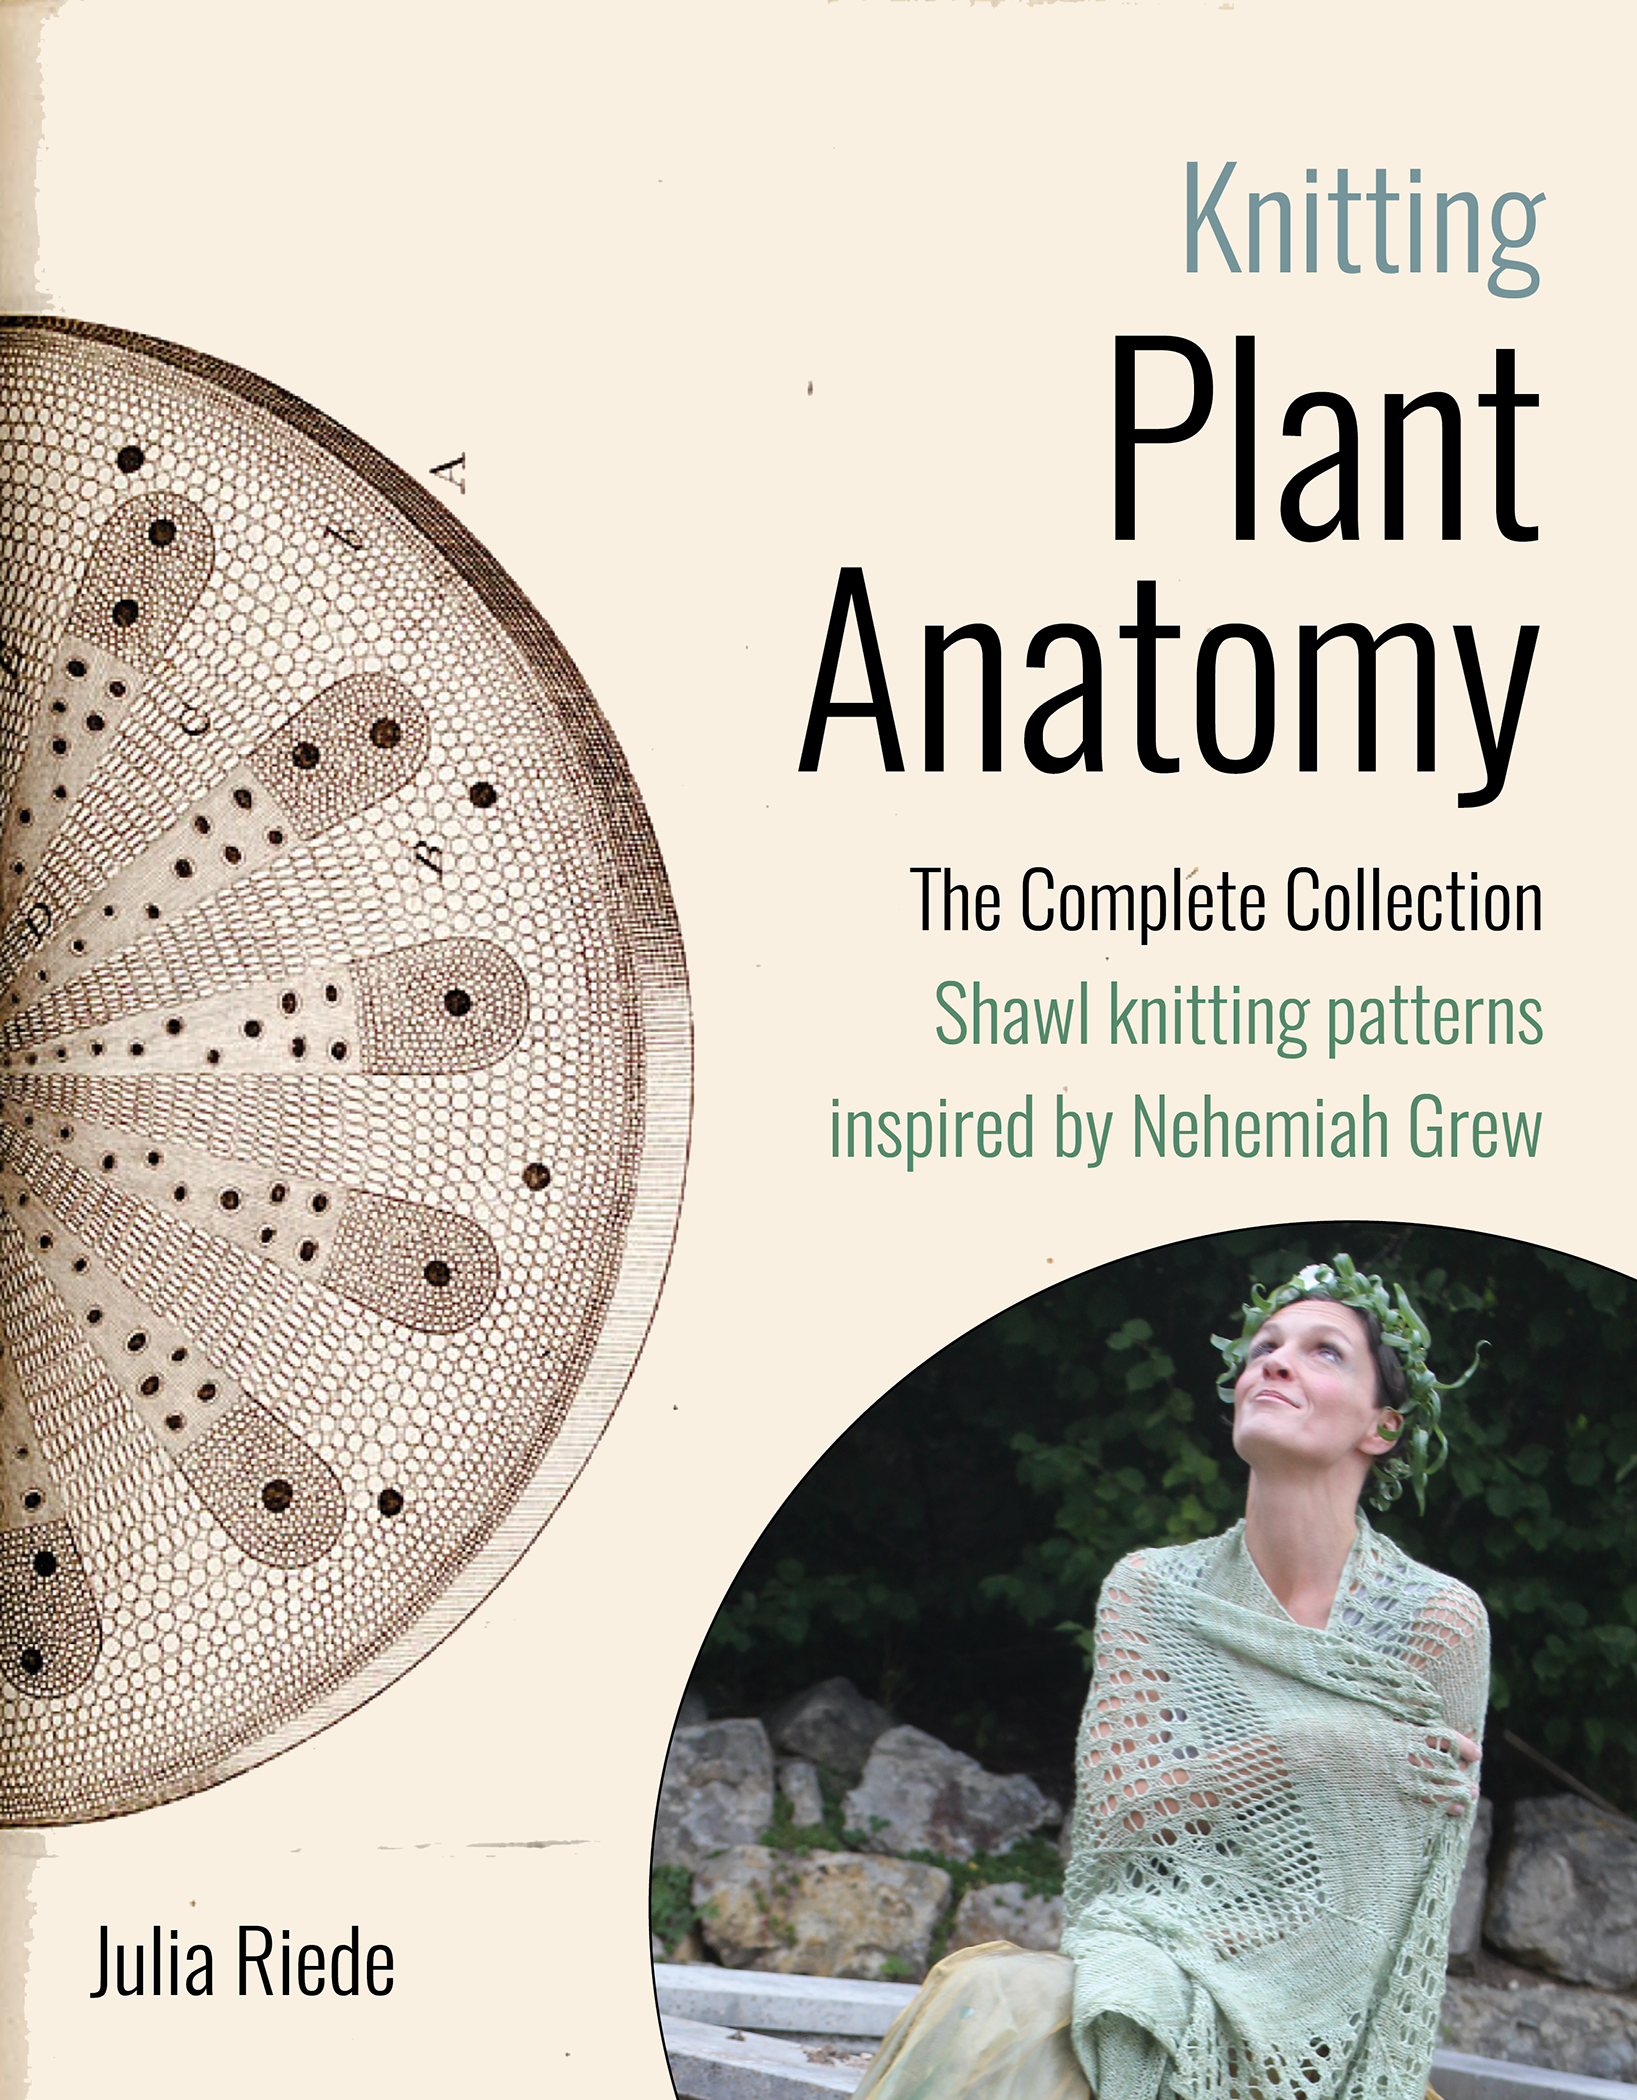 Knitting Plant Anatomy: The Complete Collection - knitting.today